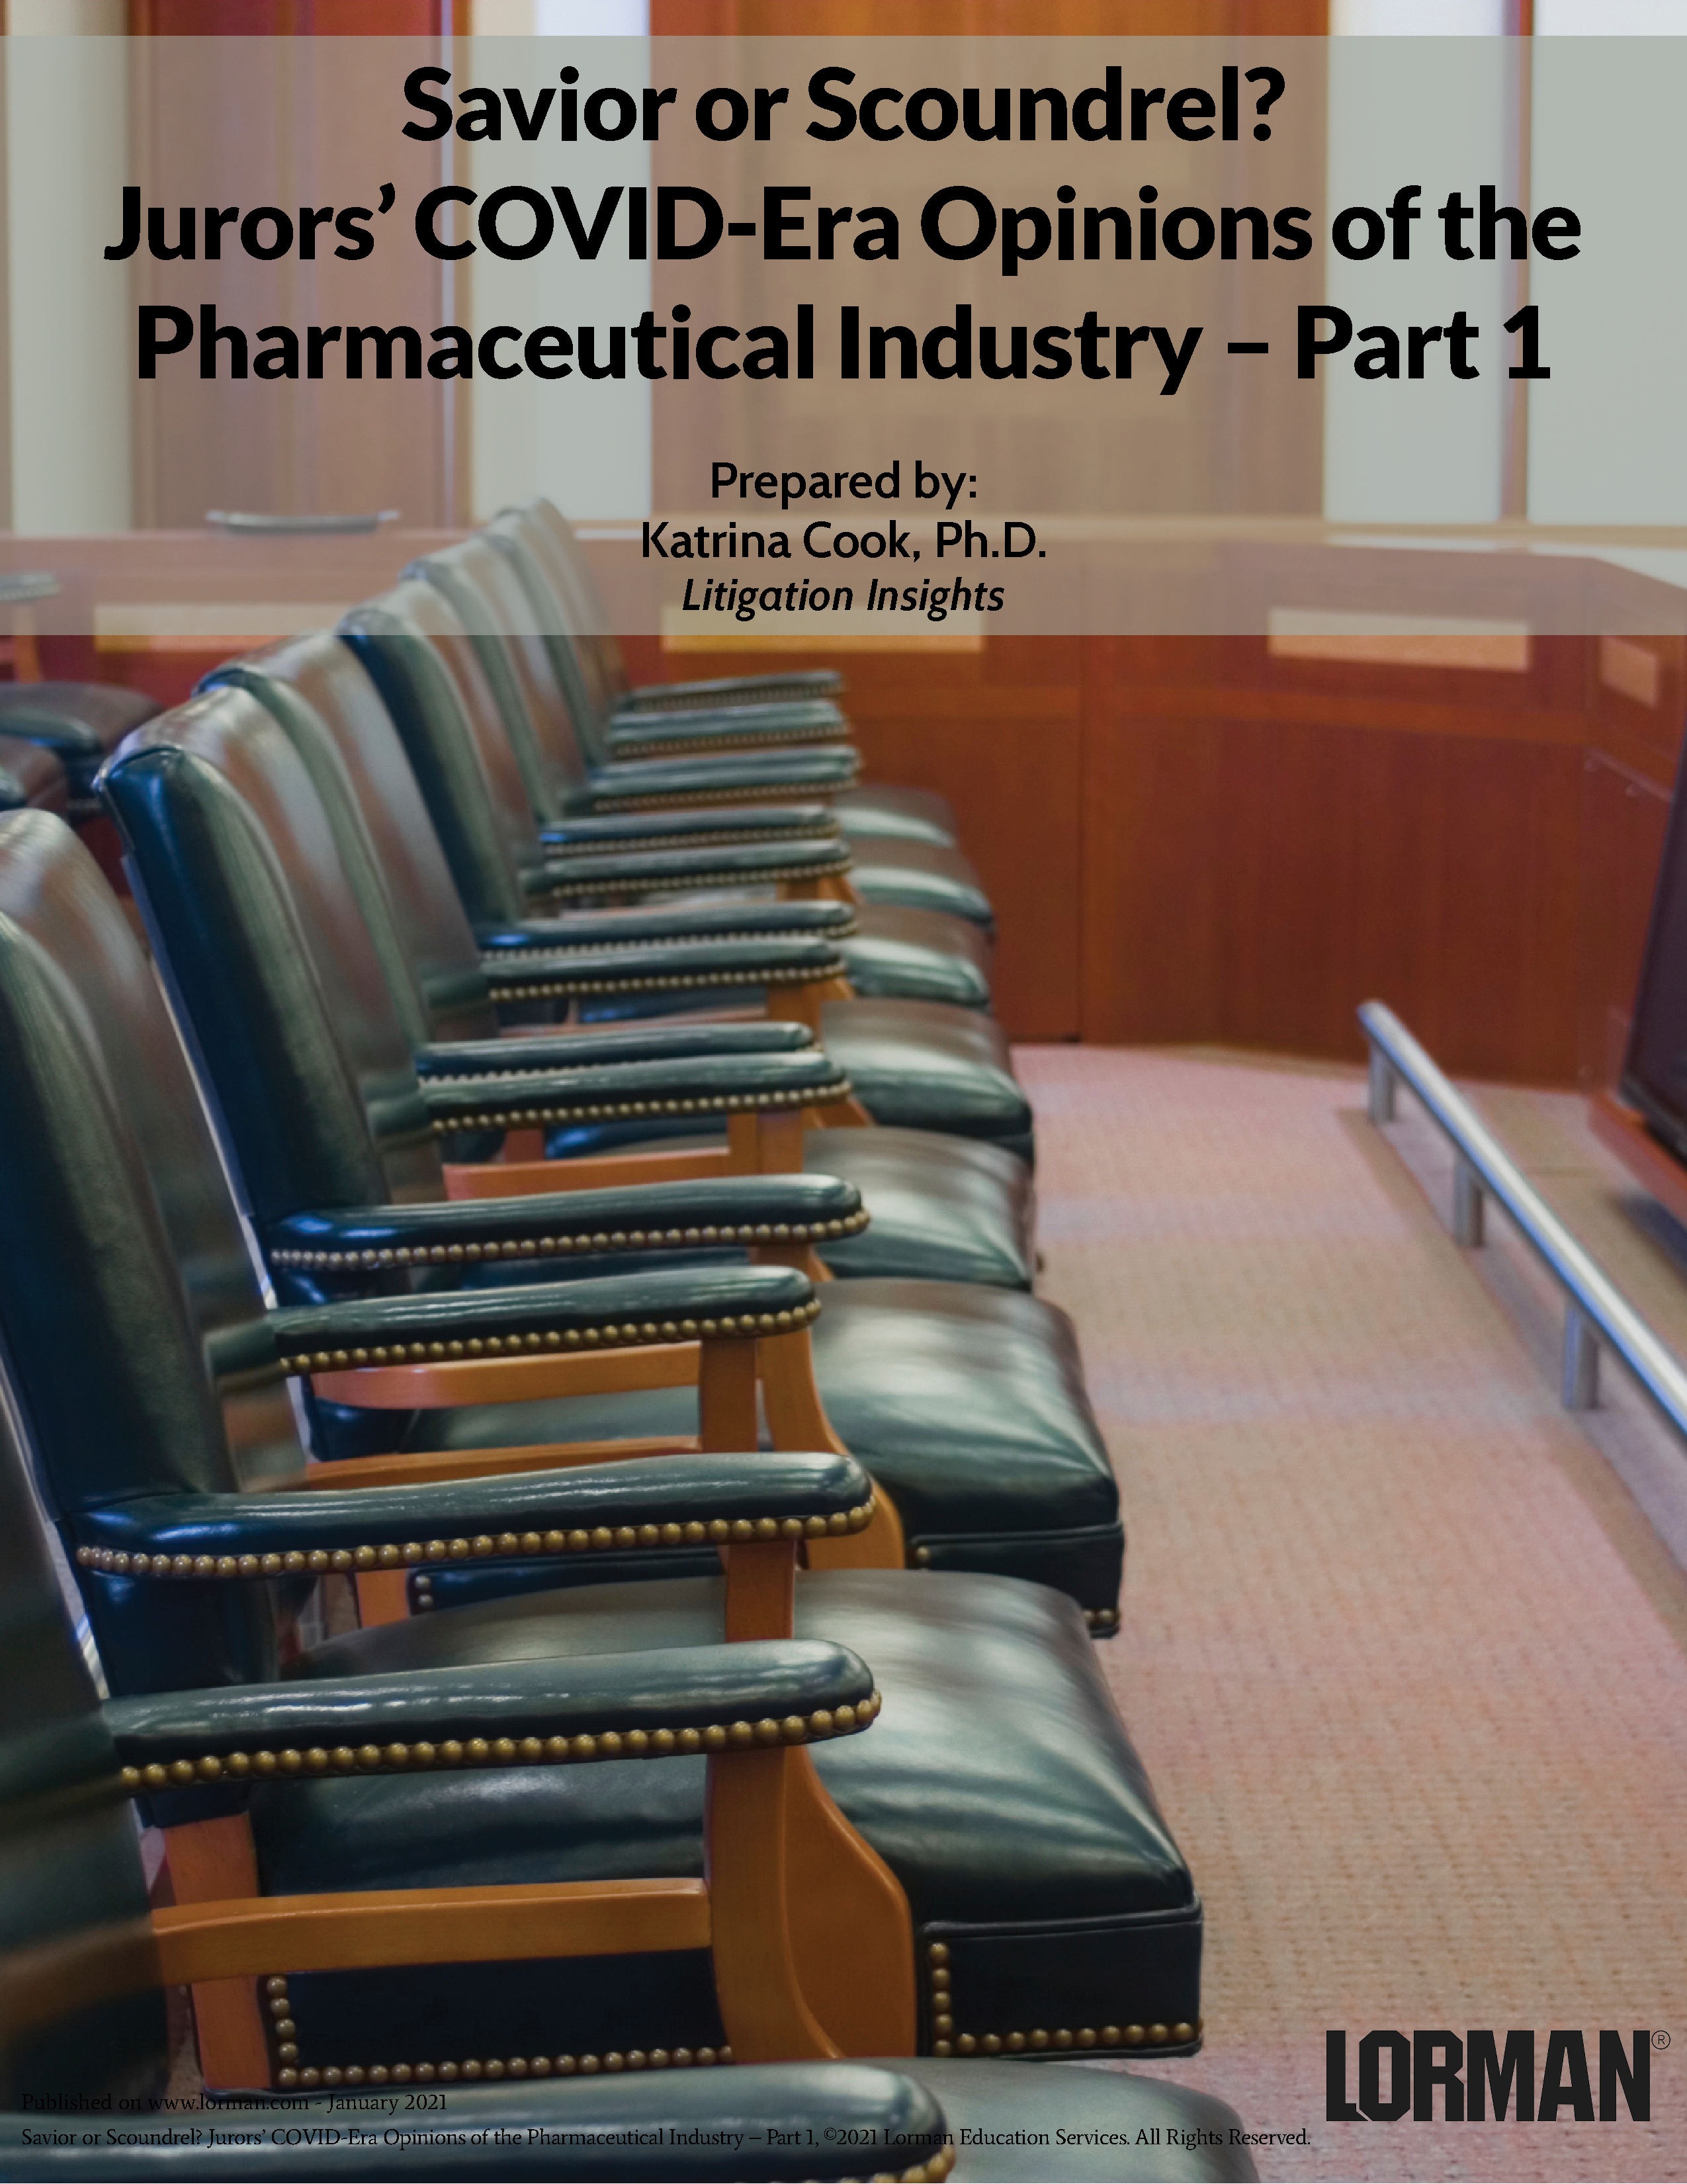 Savior or Scoundrel? Jurors' COVID-Era Opinions of the Pharmaceutical Industry – Part 1